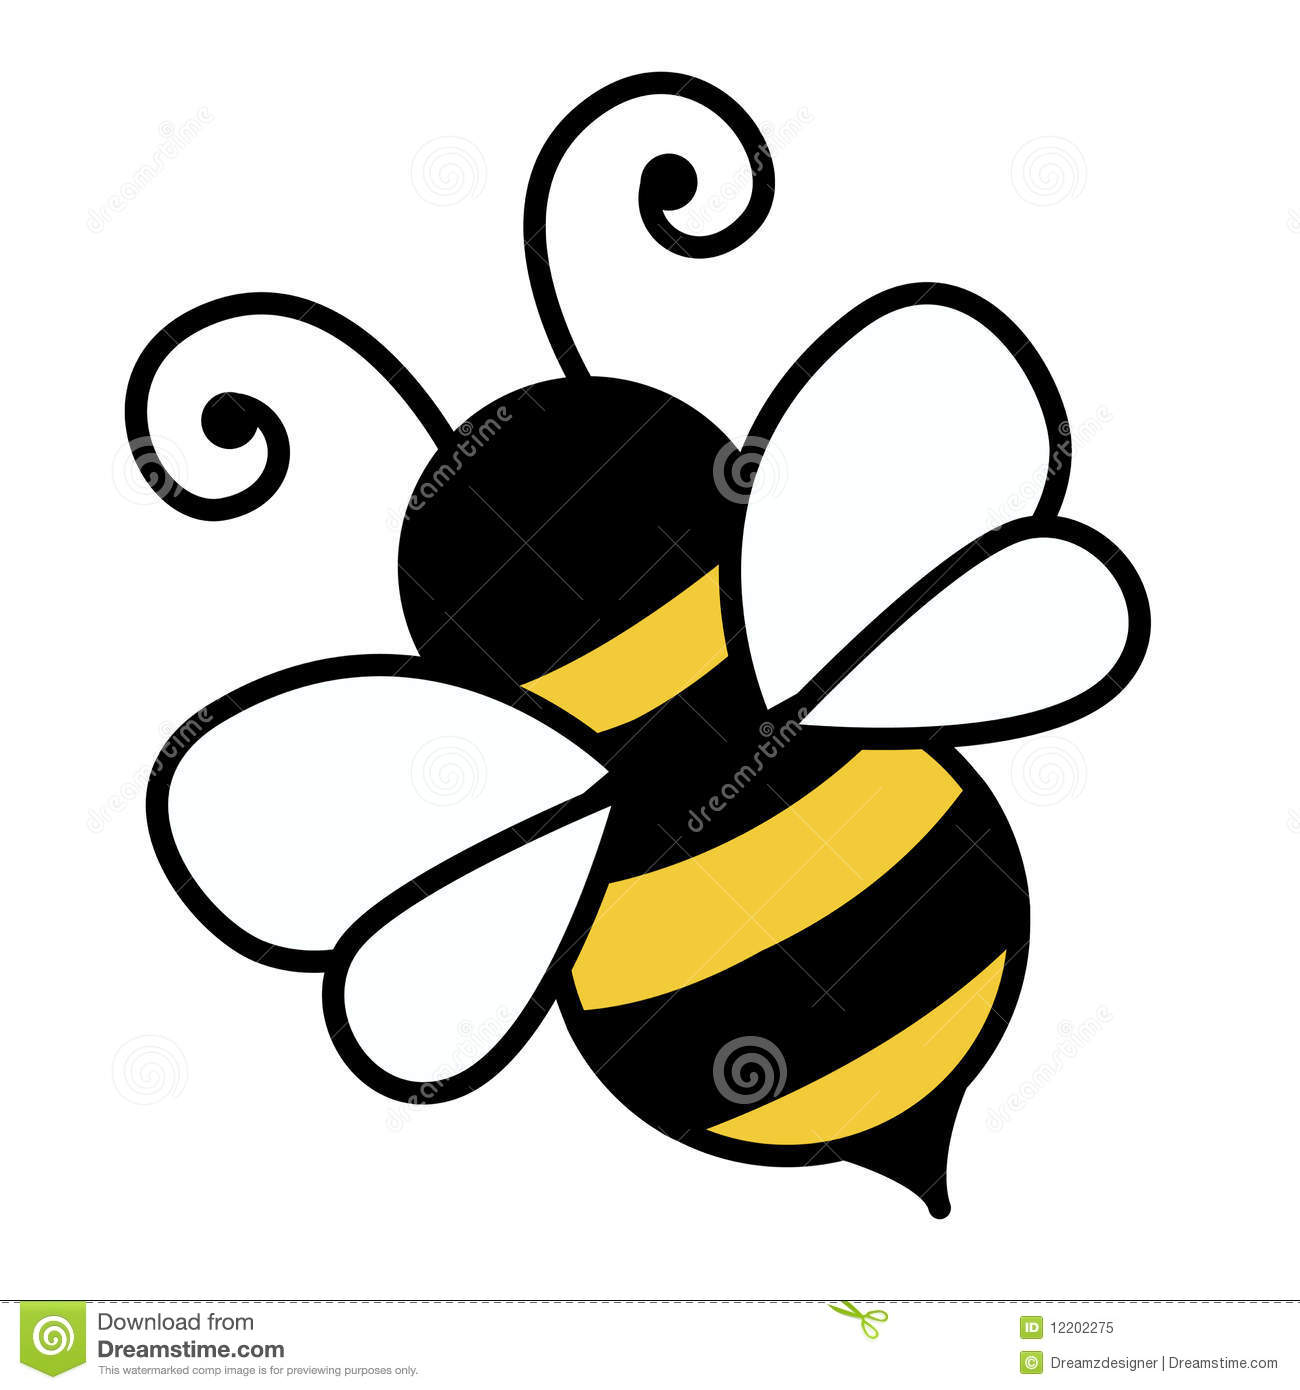 ilustraci u00f3n de la abeja foto de archivo libre de regal u00edas cute honey bee vector cute honey bee vector